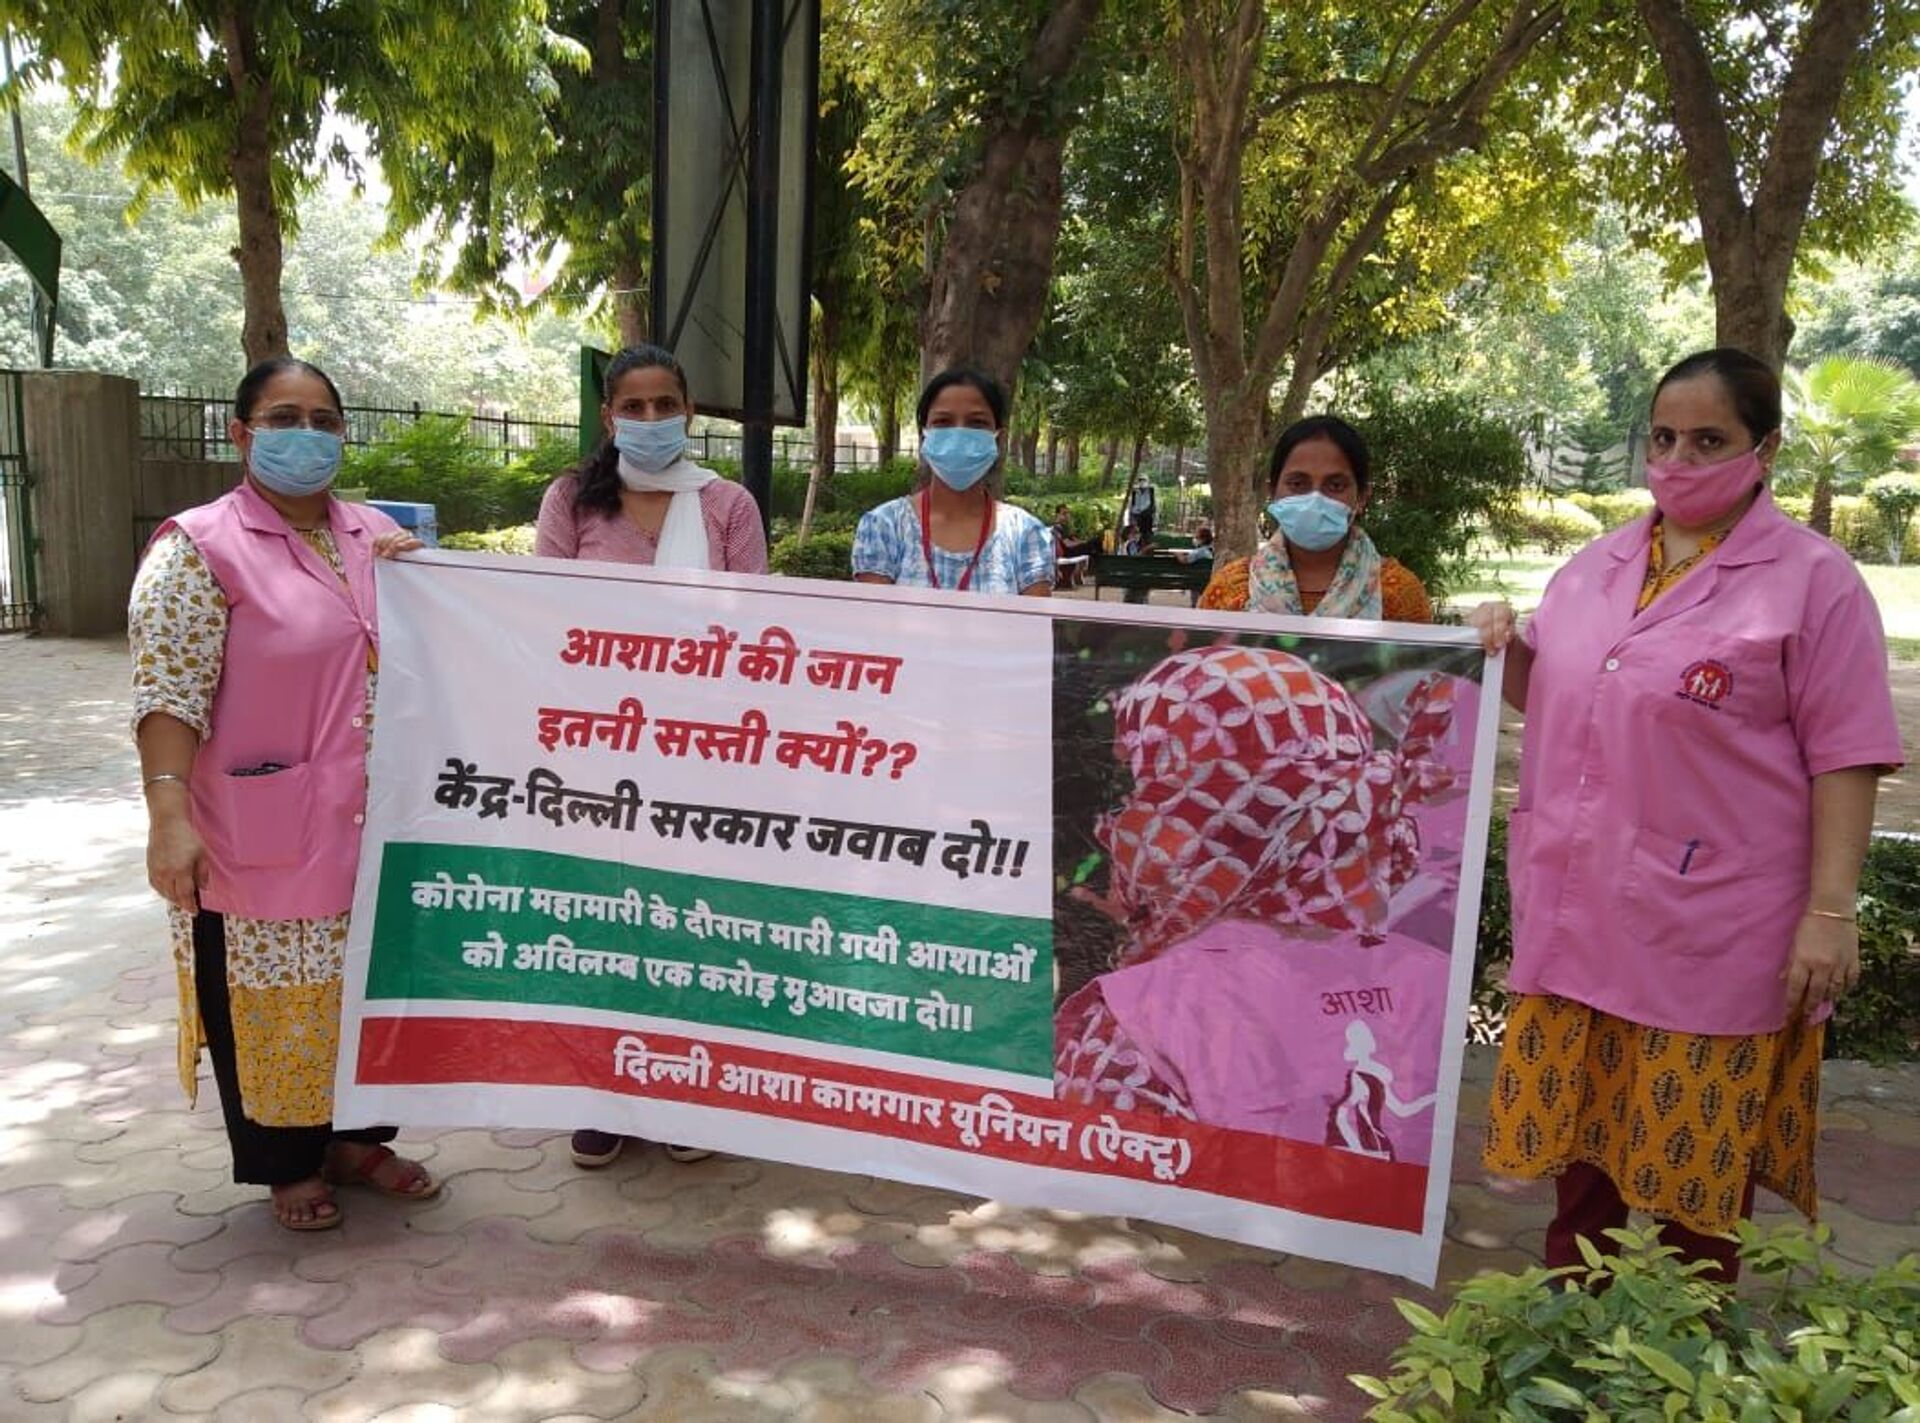 ASHA workers demand fixed wages and social security guarantees amid pandemic as they protest outside South Delhi's Gautam Nagar primary health care dispensary - Sputnik International, 1920, 07.09.2021